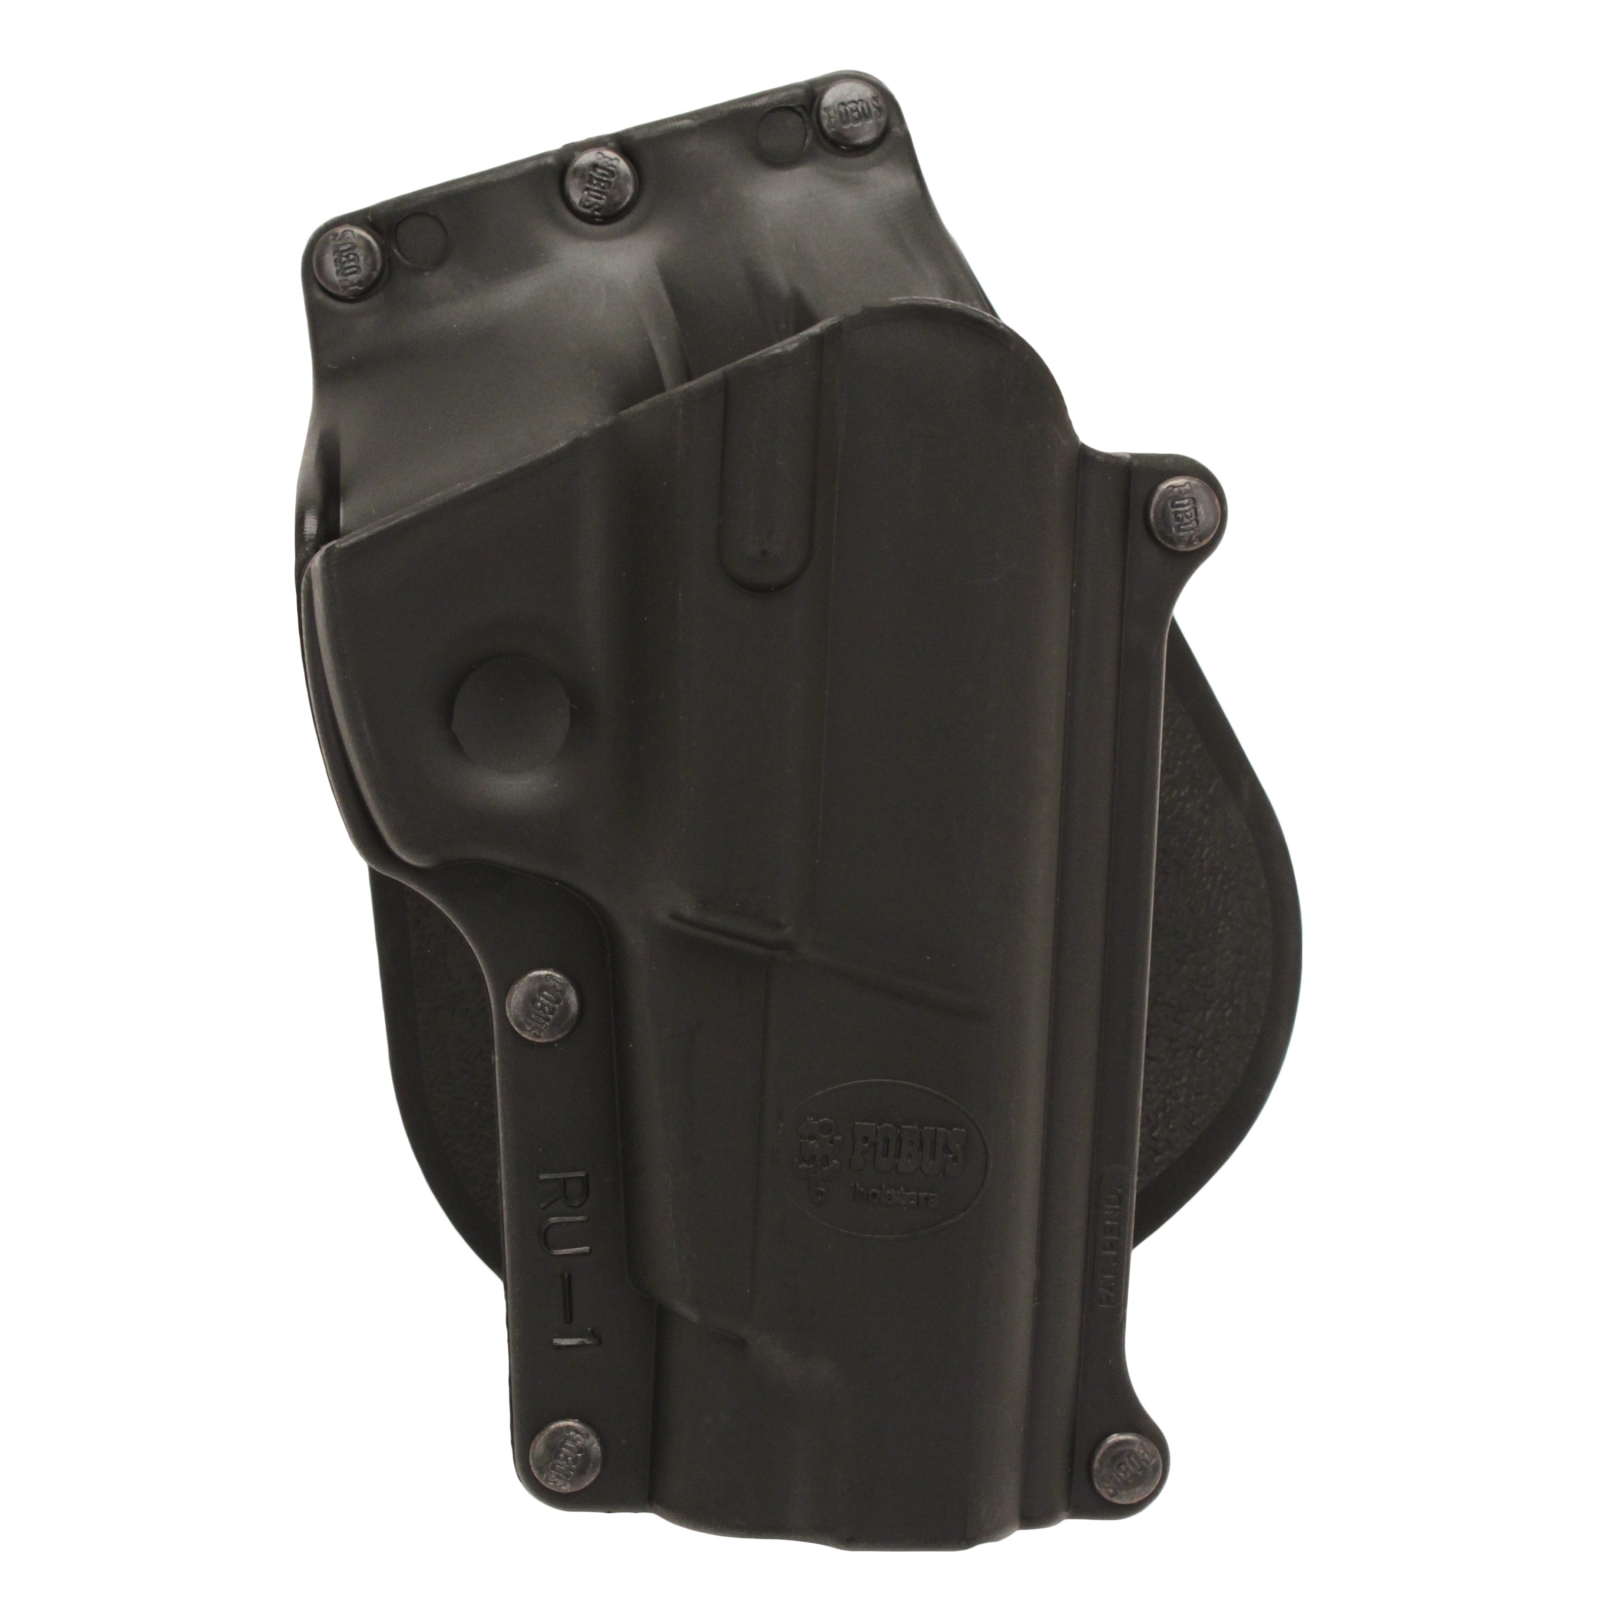 Fobus Roto Holster, Ruger P85P, 89 Lg. Auto 9mm, .40 cal Paddle Style by Fobus